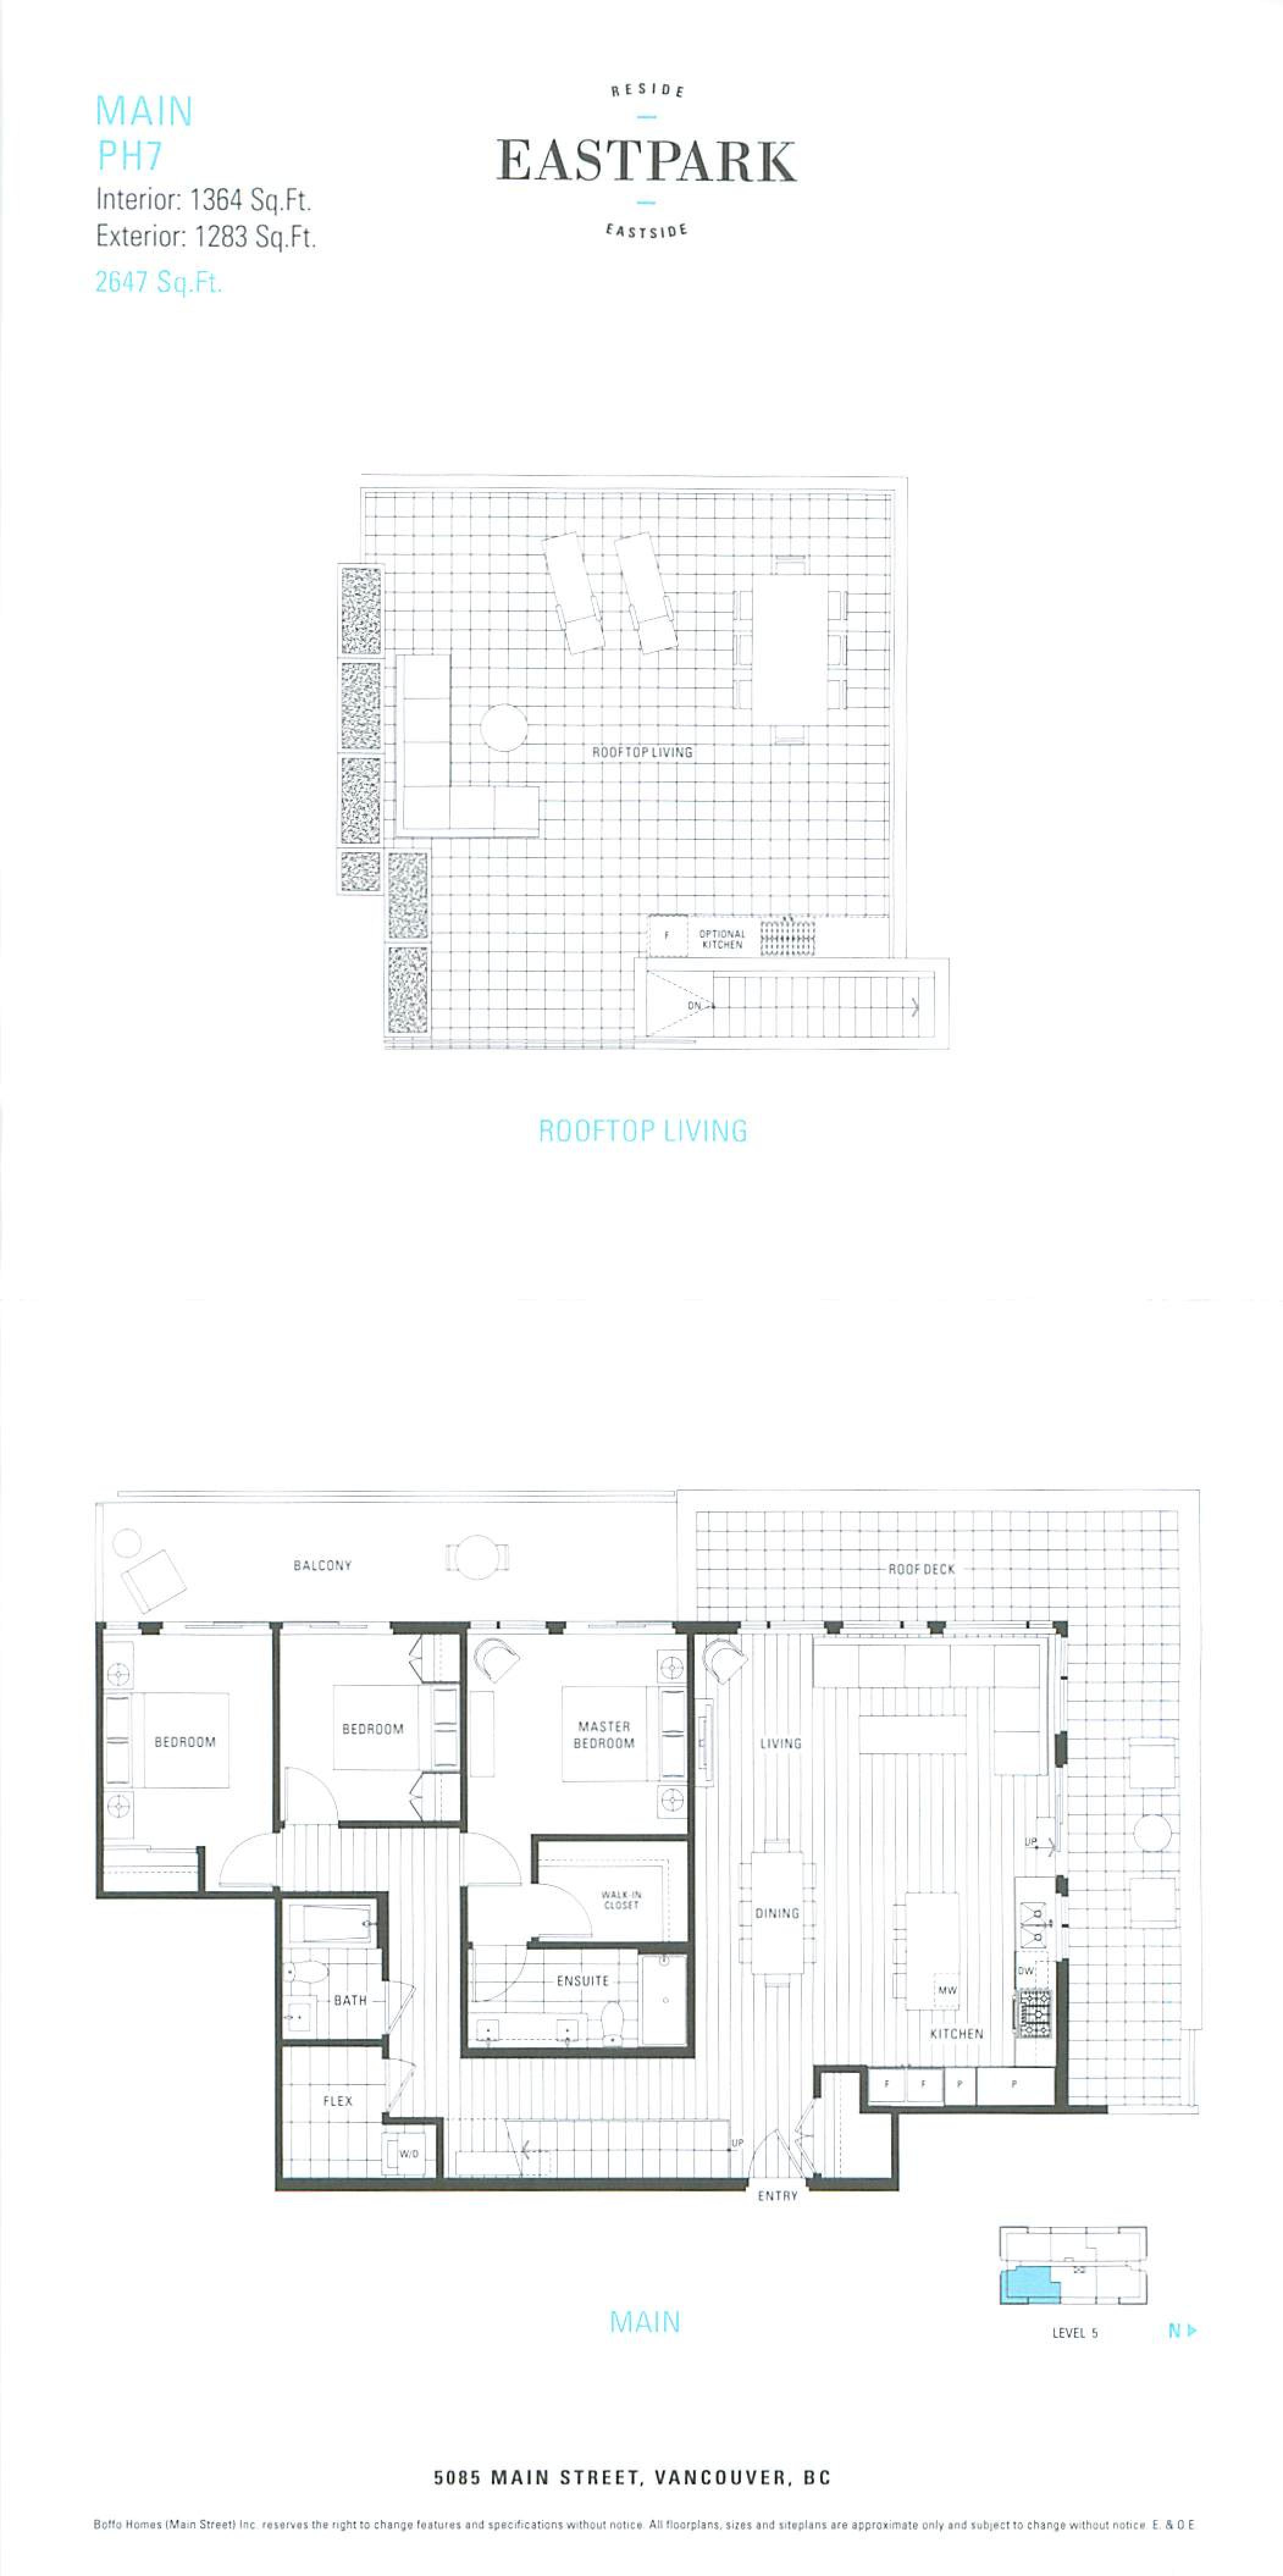 EastPark Main Larger Floor Plans Mike Stewart-page-005